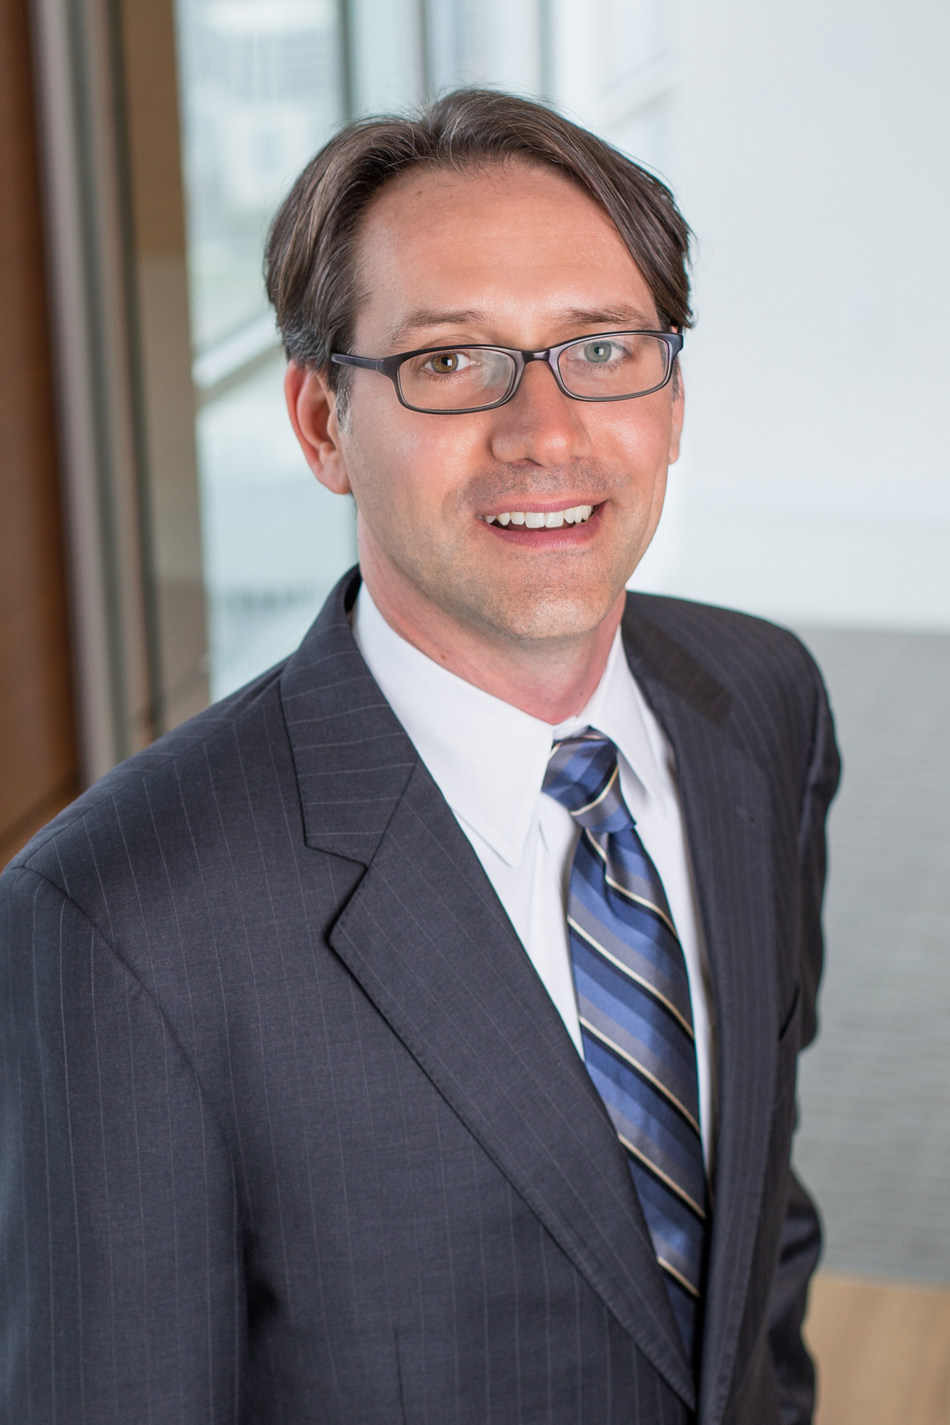 Fish & Richardson principal Josh Griswold was named a 2019 Best Mentor by Texas Lawyer.